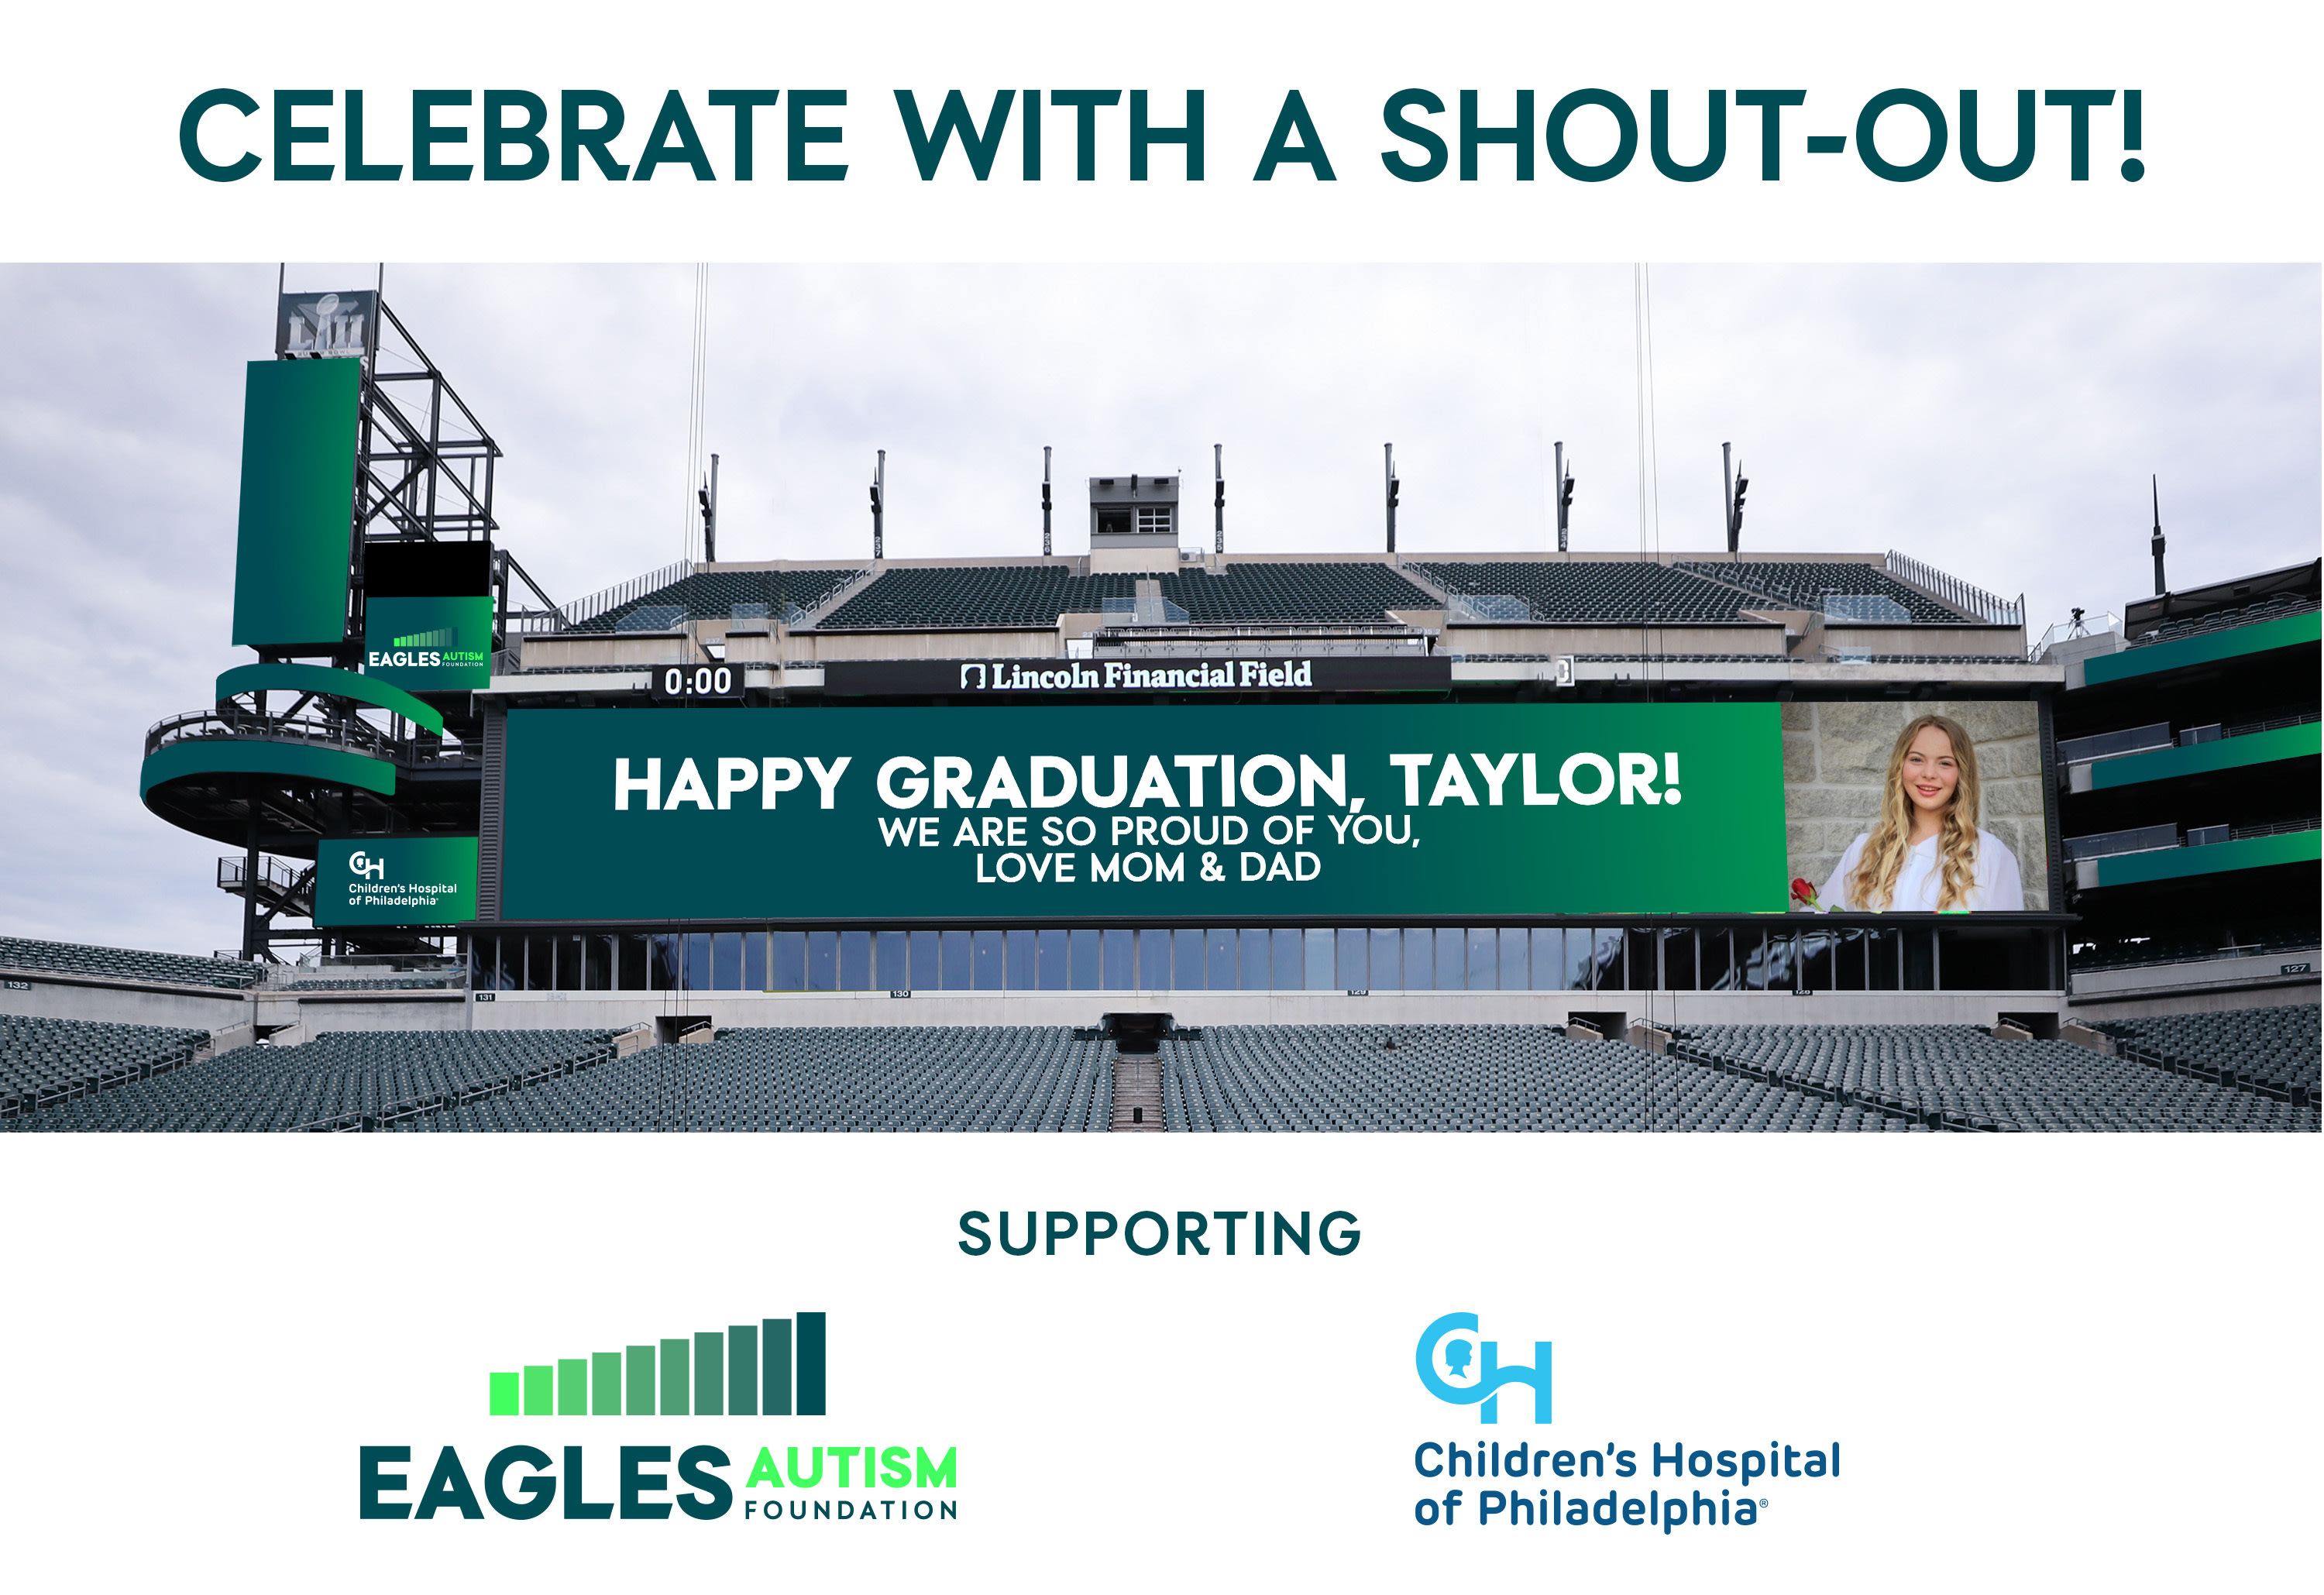 Celebrate with a shoutout